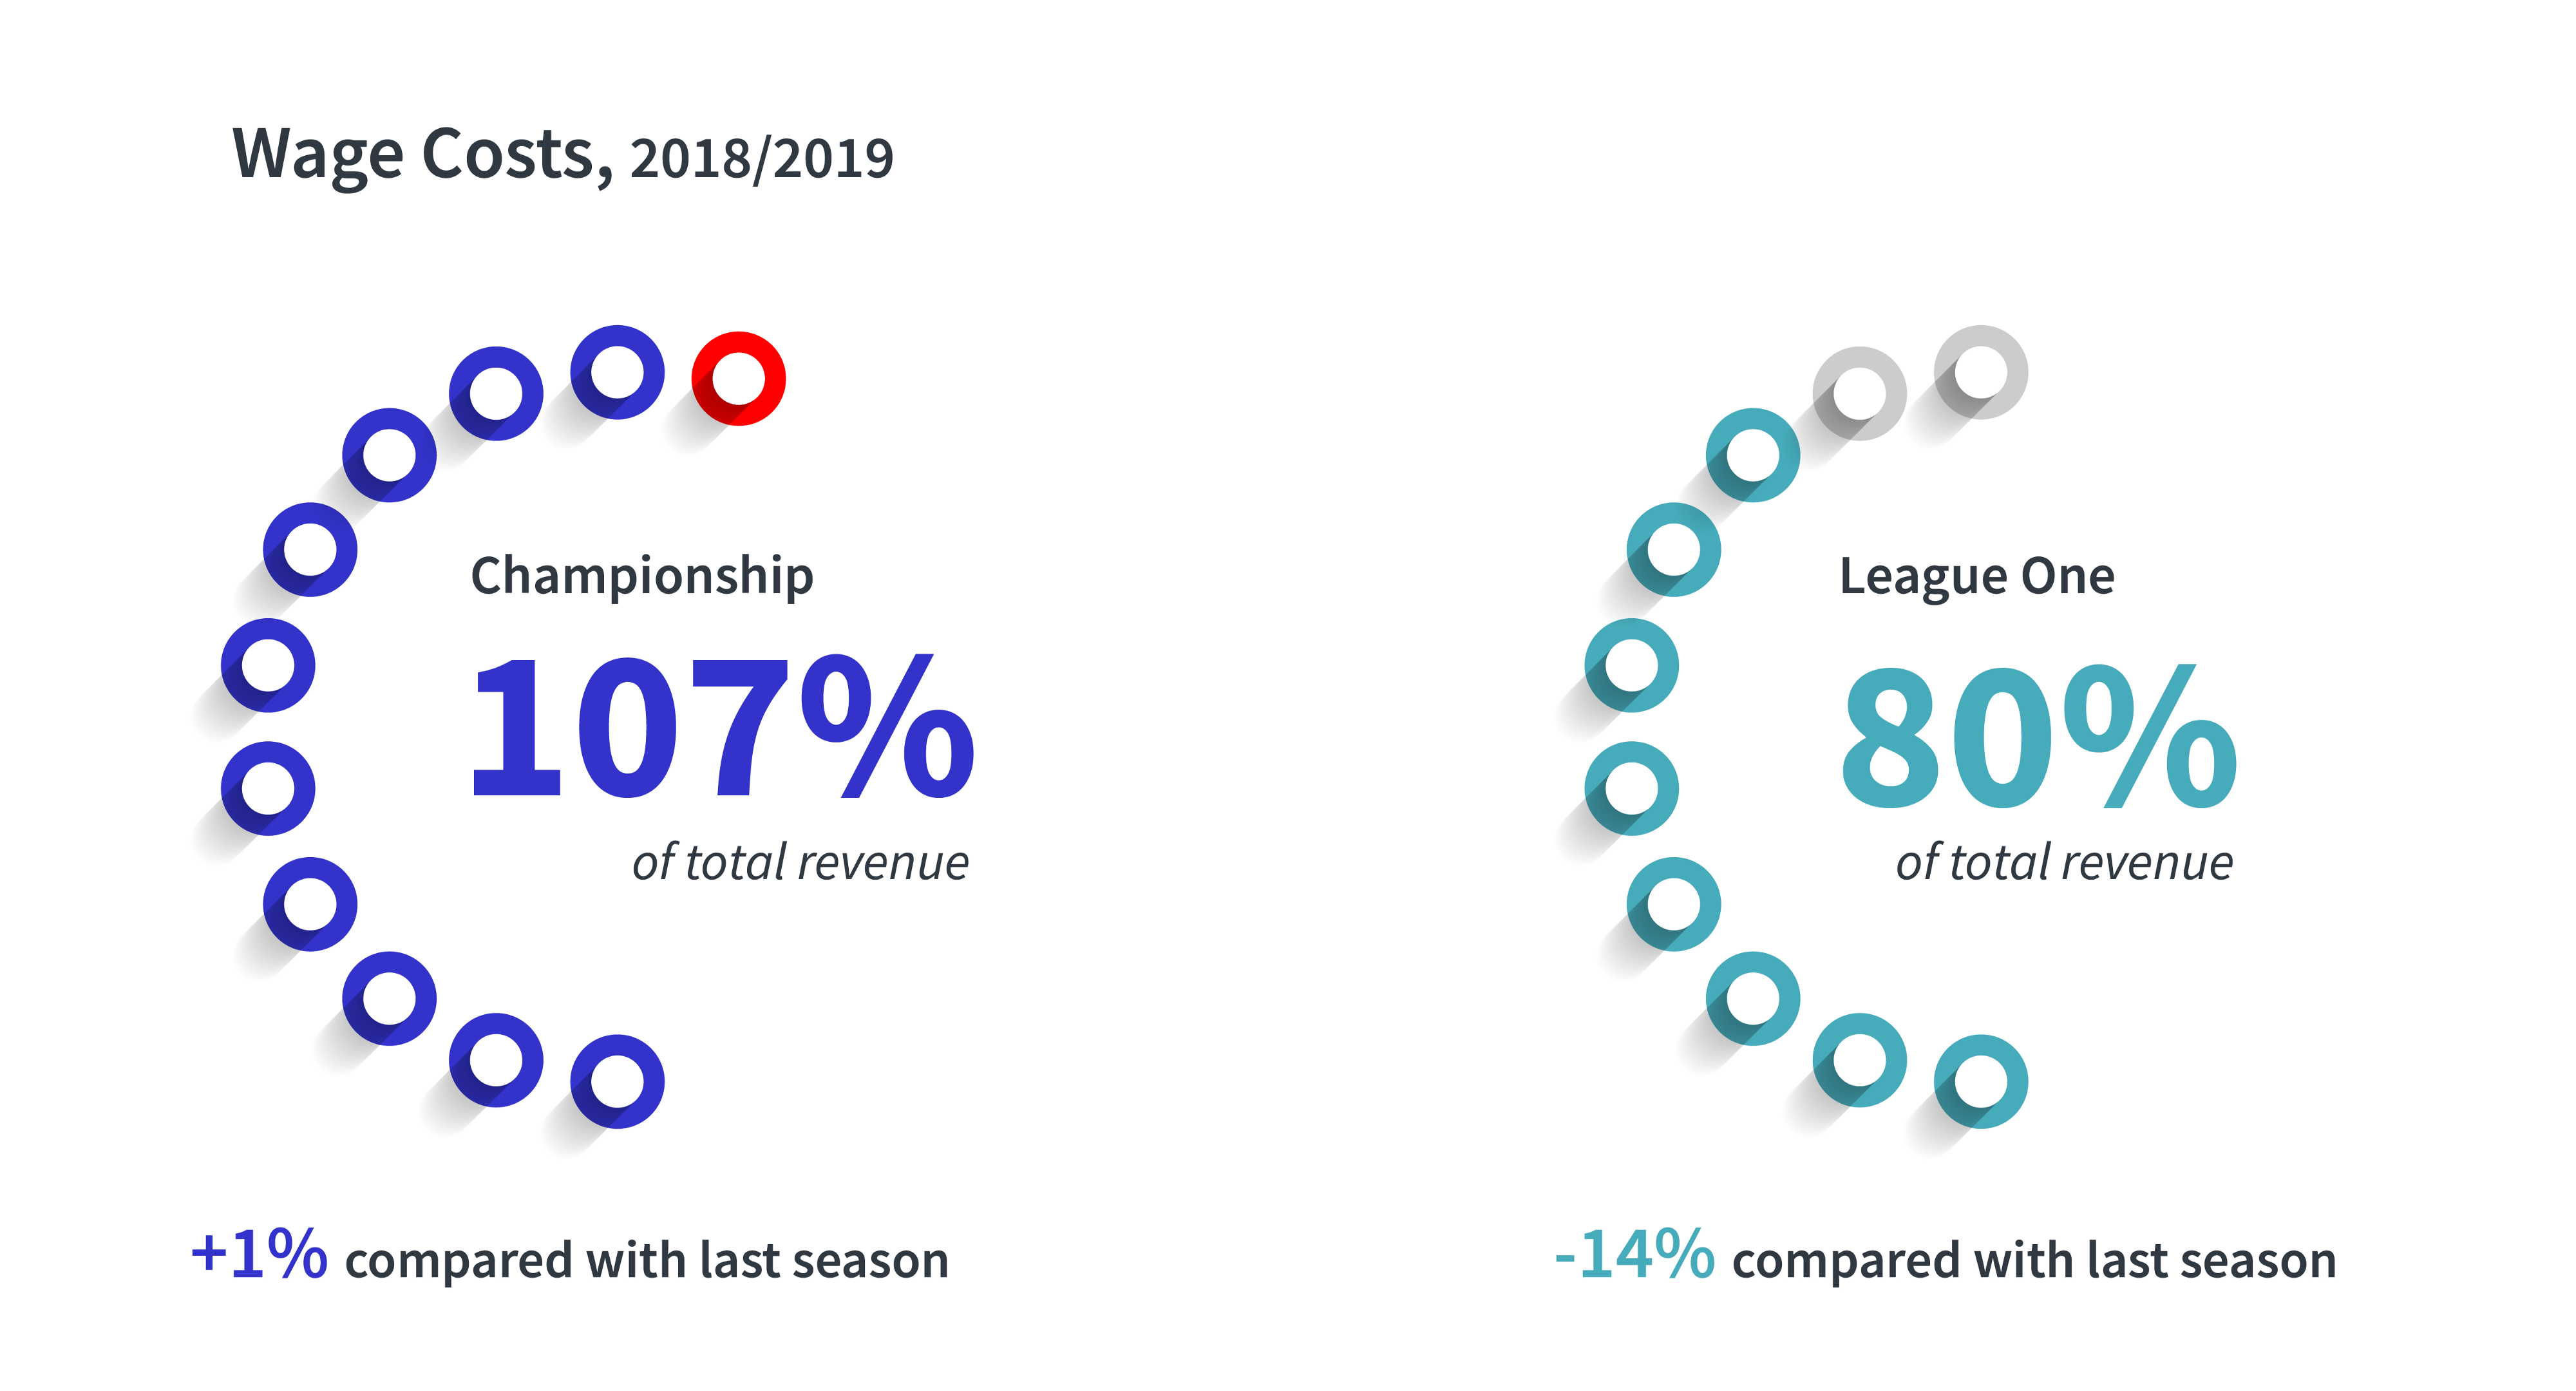 EFL Championship and League One Wage Costs and Total Revenue, 2018/19